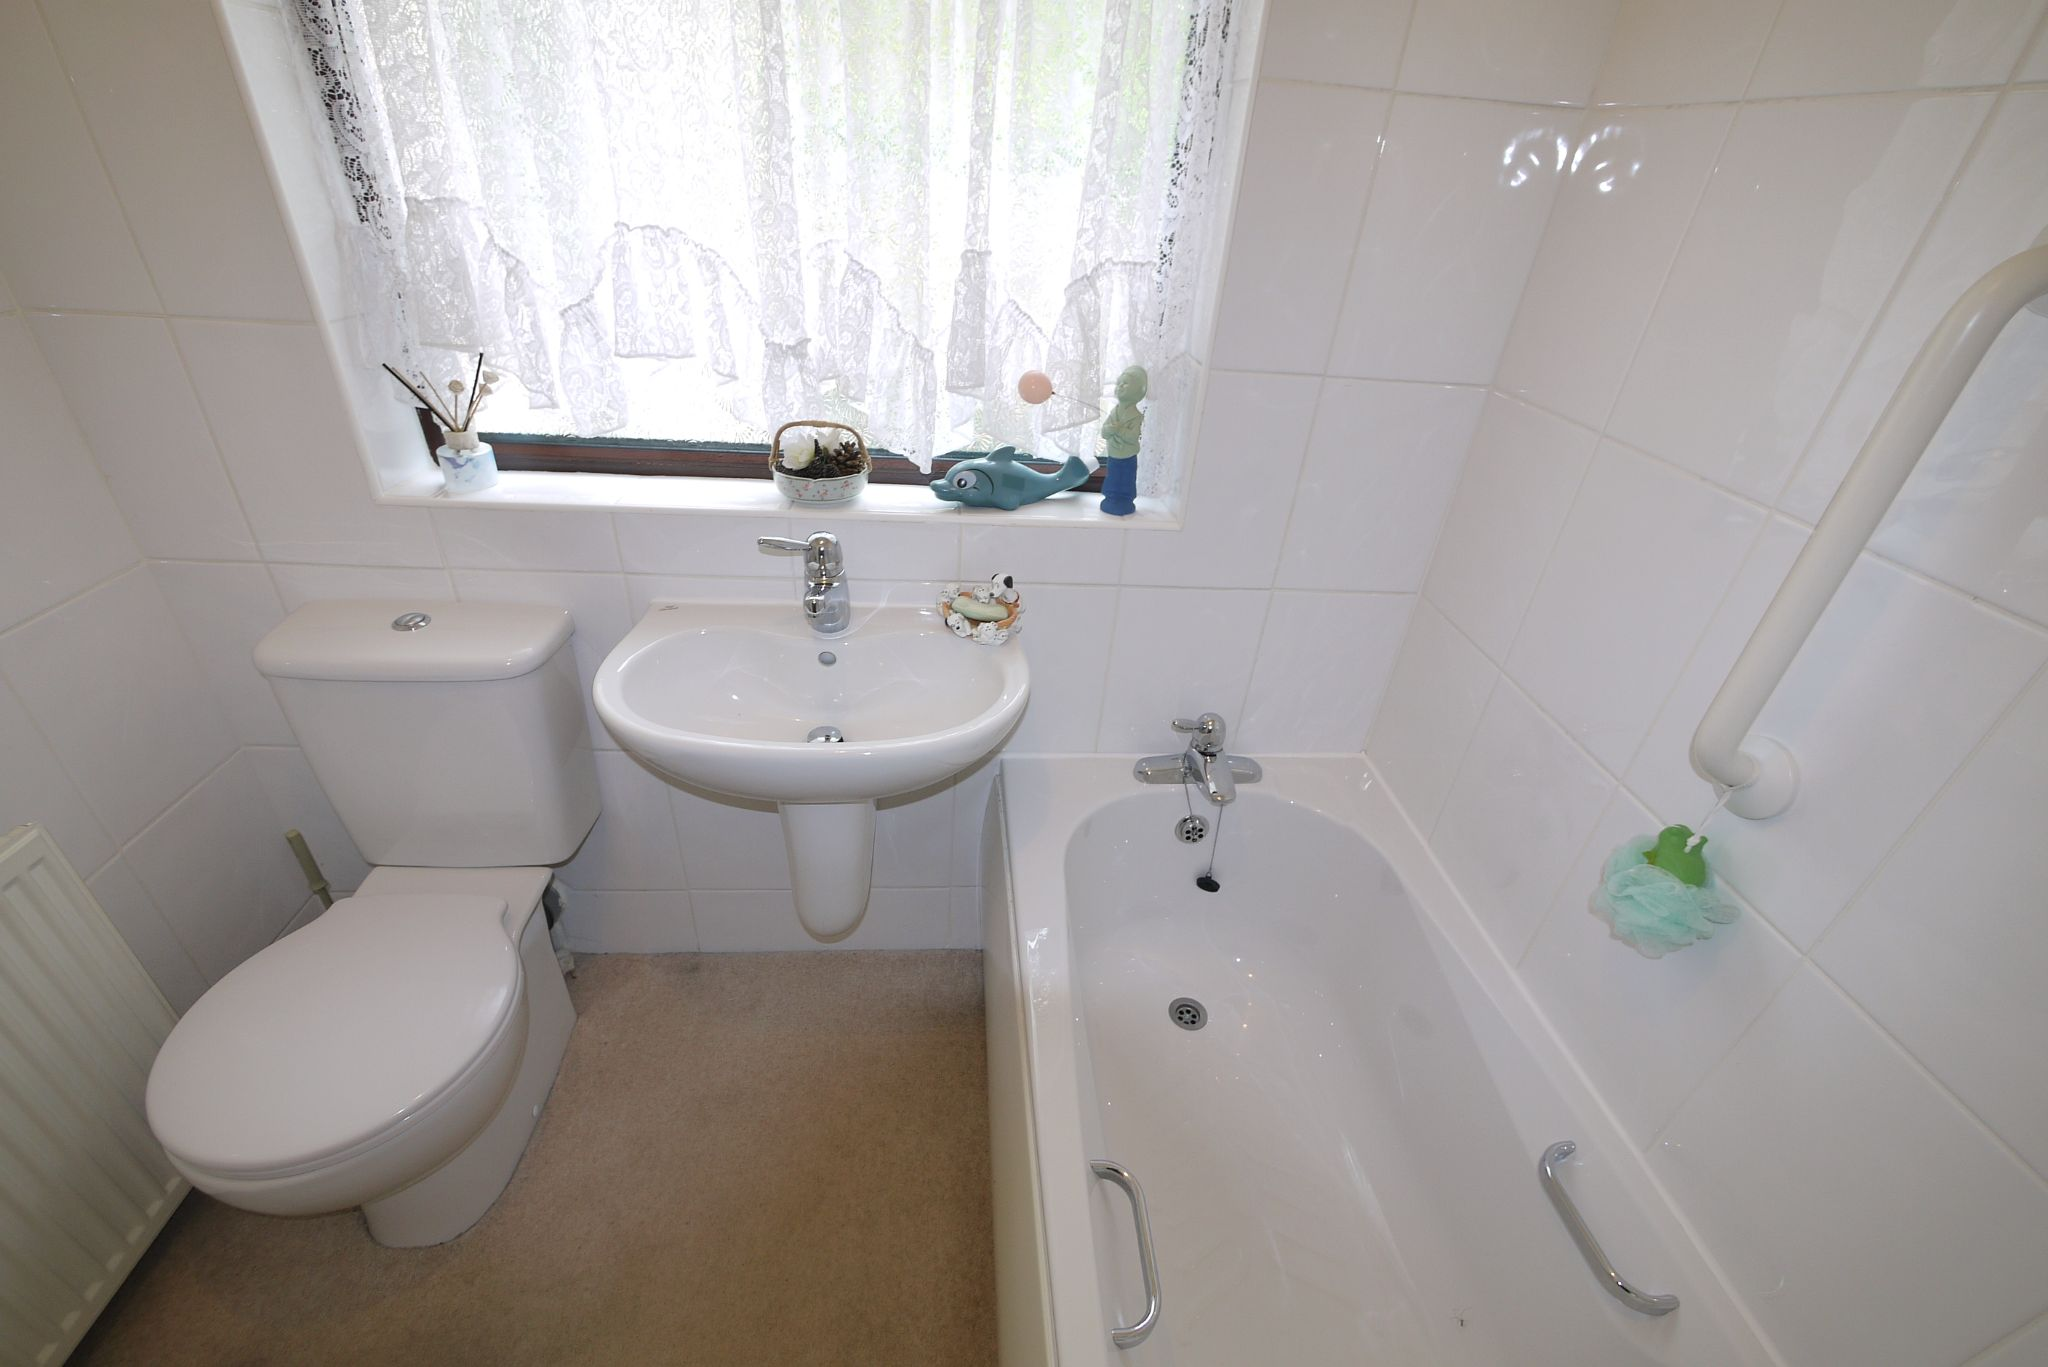 3 bedroom semi-detached bungalow SSTC in Brighouse - Photograph 8.